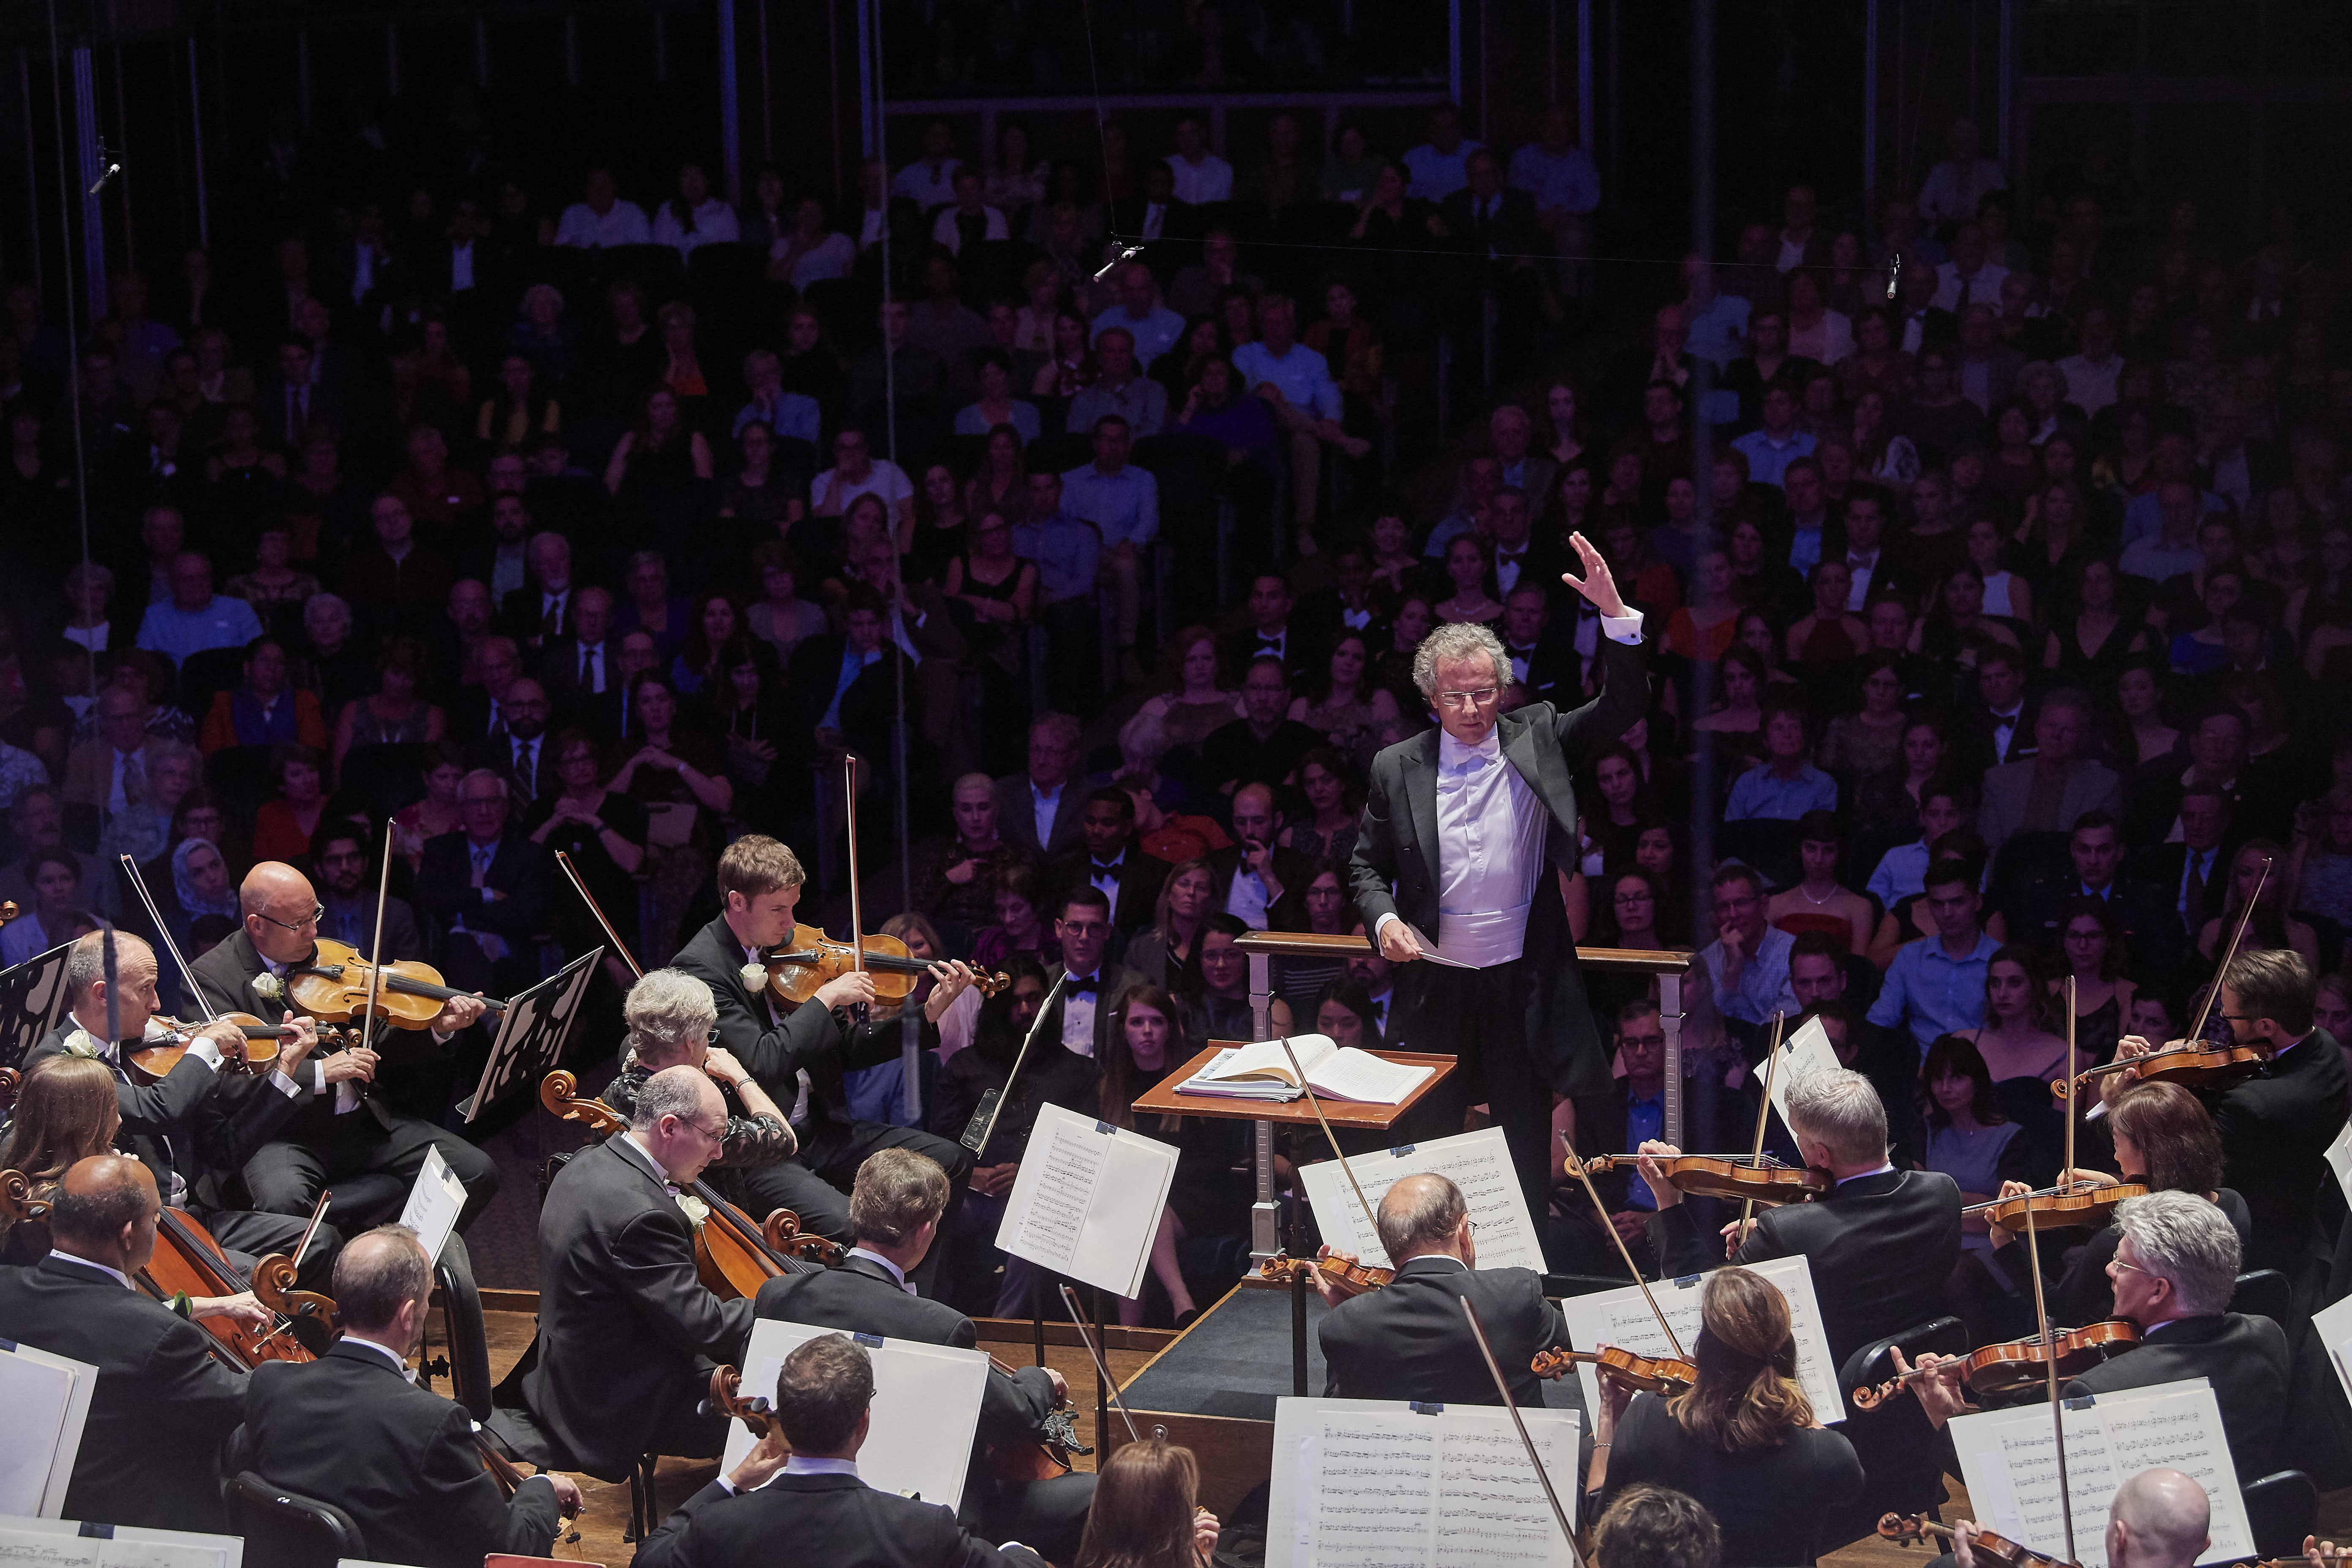 Music Director, Franz Welser-Möst leads The Cleveland Orchestra